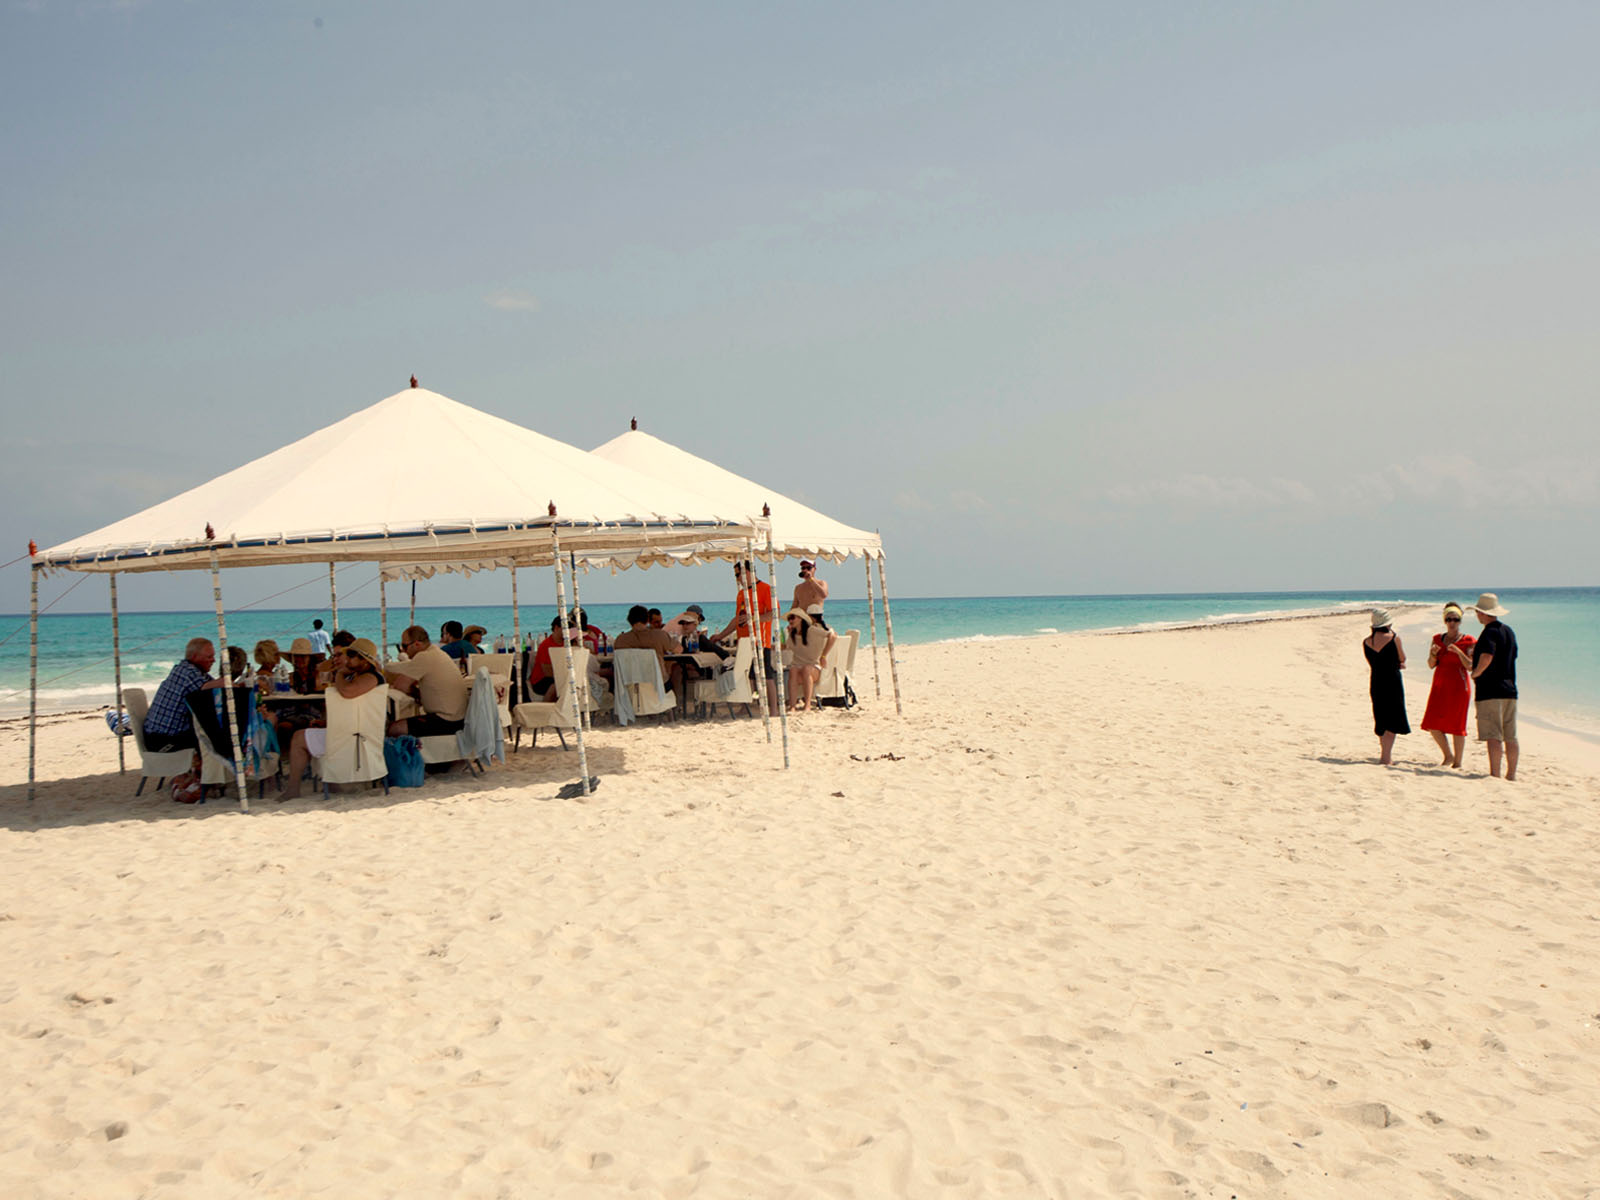 Gallery Tours & Safari - Sandbank Picnic